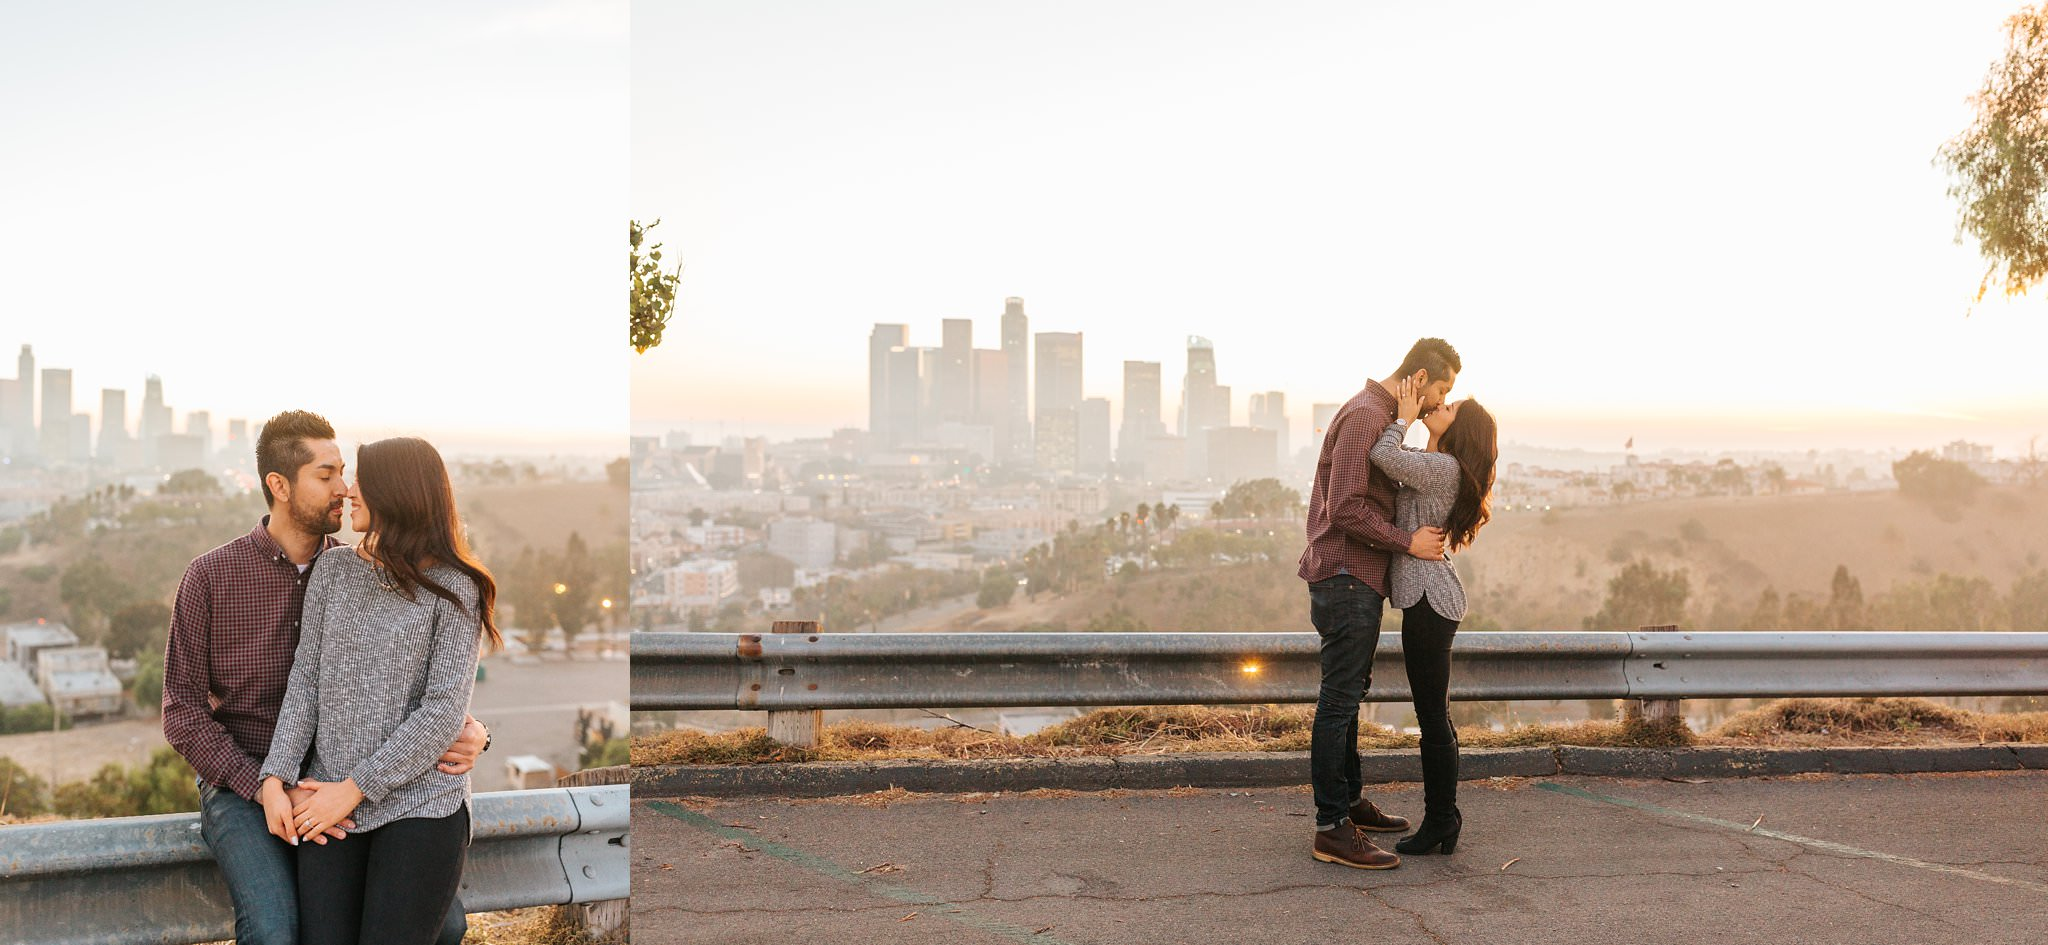 Los Angeles Engagement Session - LA Skyline - Skyline of Los Angeles - http://brittneyhannonphotography.com